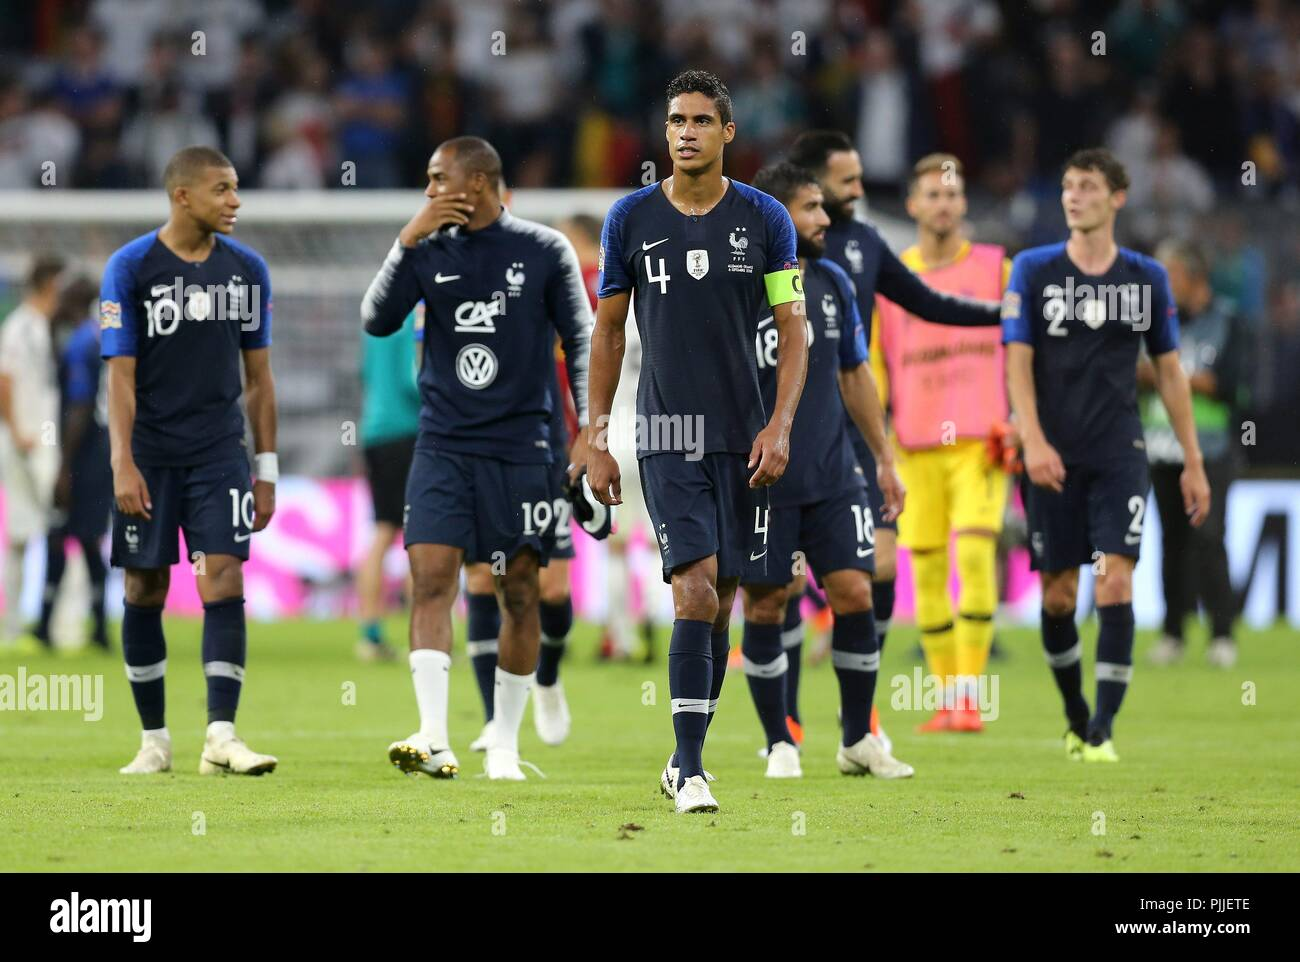 firo: 06.09.2018 Fuvuball, Soccer, National Team, Germany, UEFA, Nations League, Division A, League A, GER, Germany - FRA, France Raphael Varane, France, FRA, full figure | usage worldwide - Stock Image